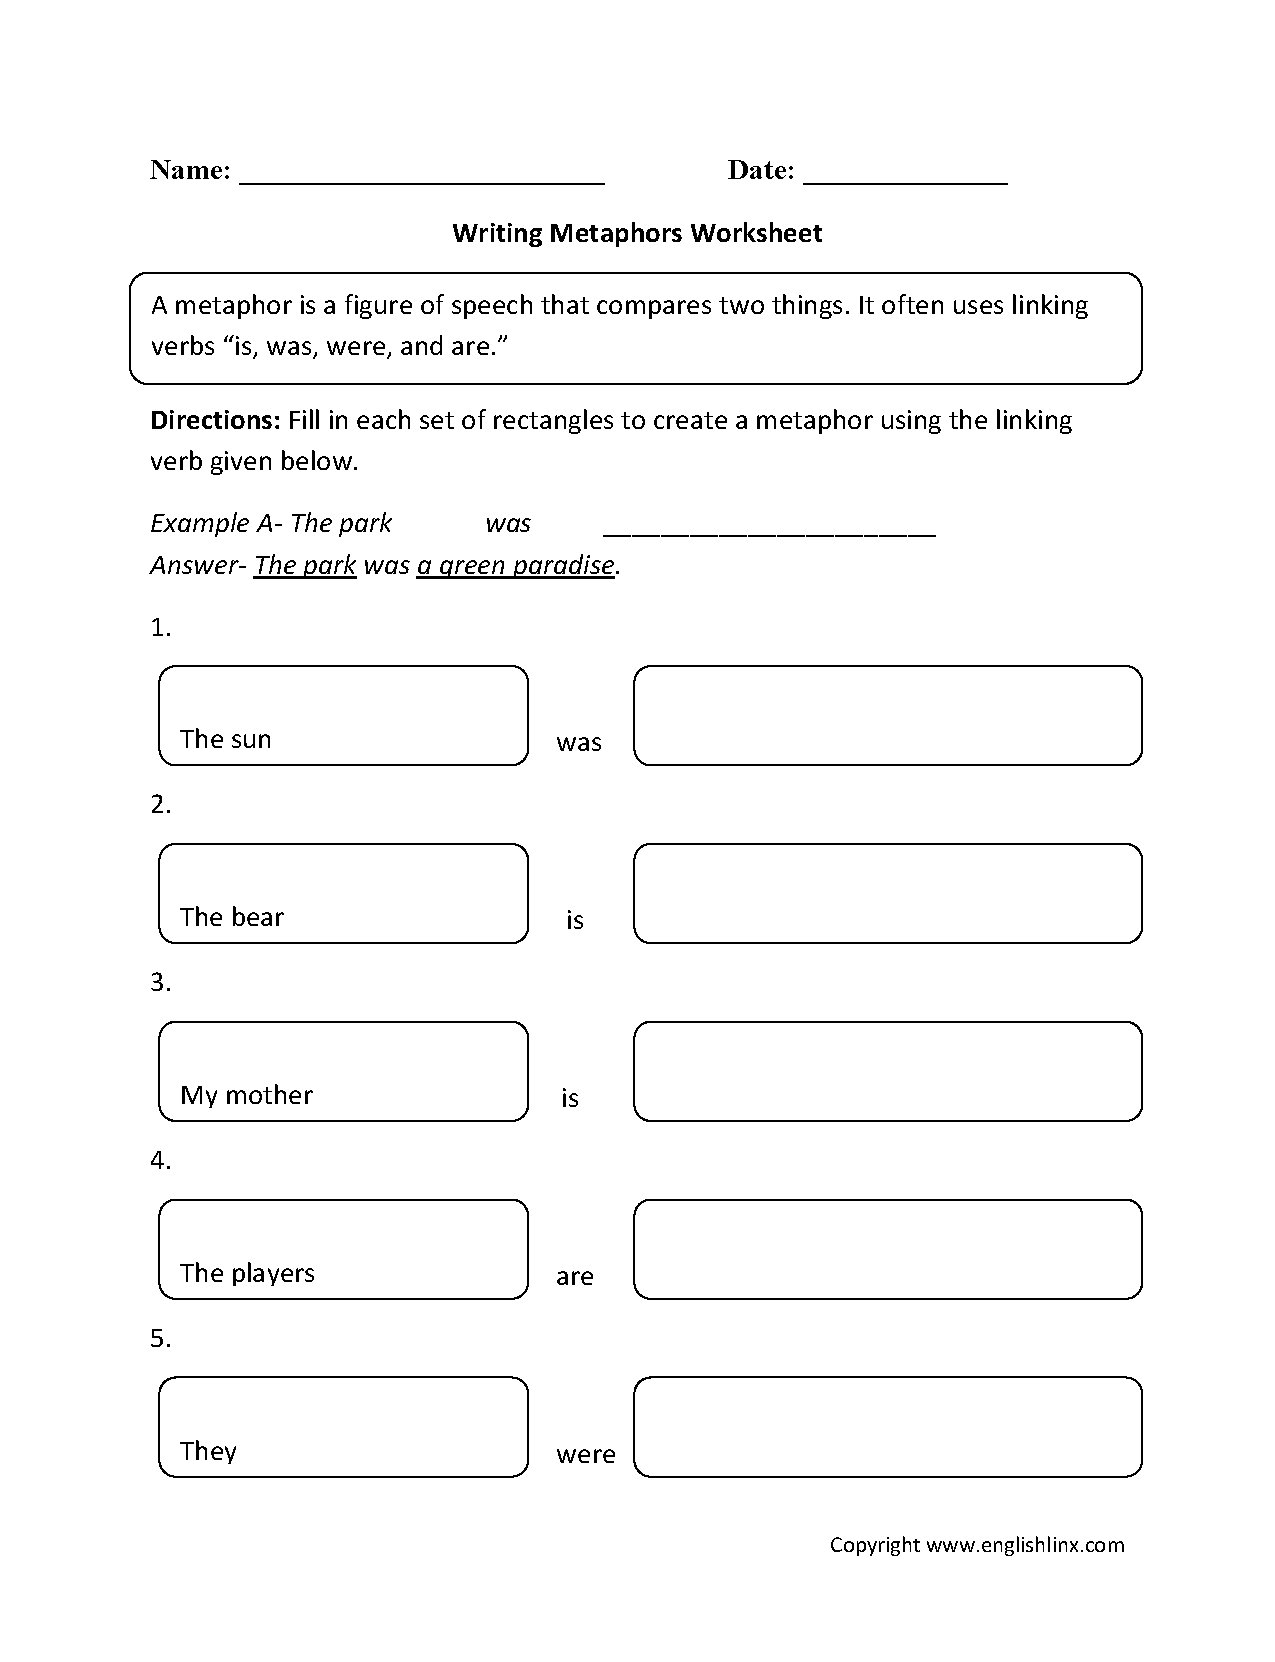 Worksheets Fifth Grade English Worksheets writing metaphors worksheet part 1 beginner englishlinx com these worksheets are great for working with use the and intermediate lev